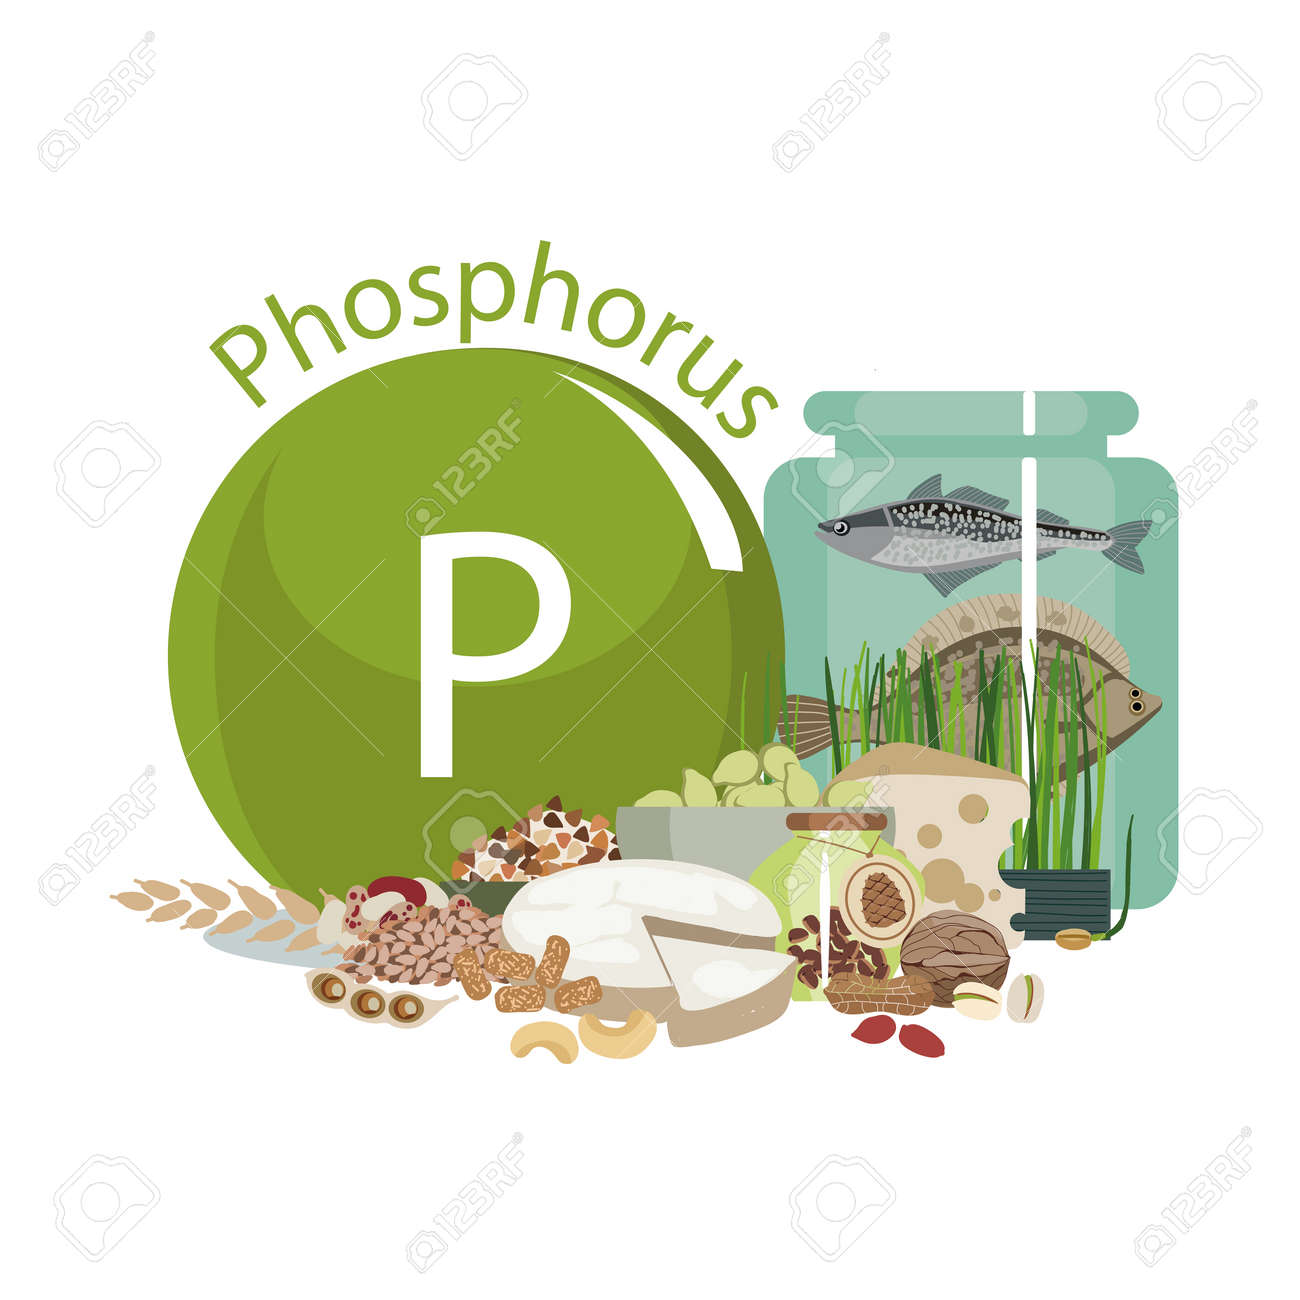 Phosphorus Food Sources Food Products With The Maximum Phosphorus